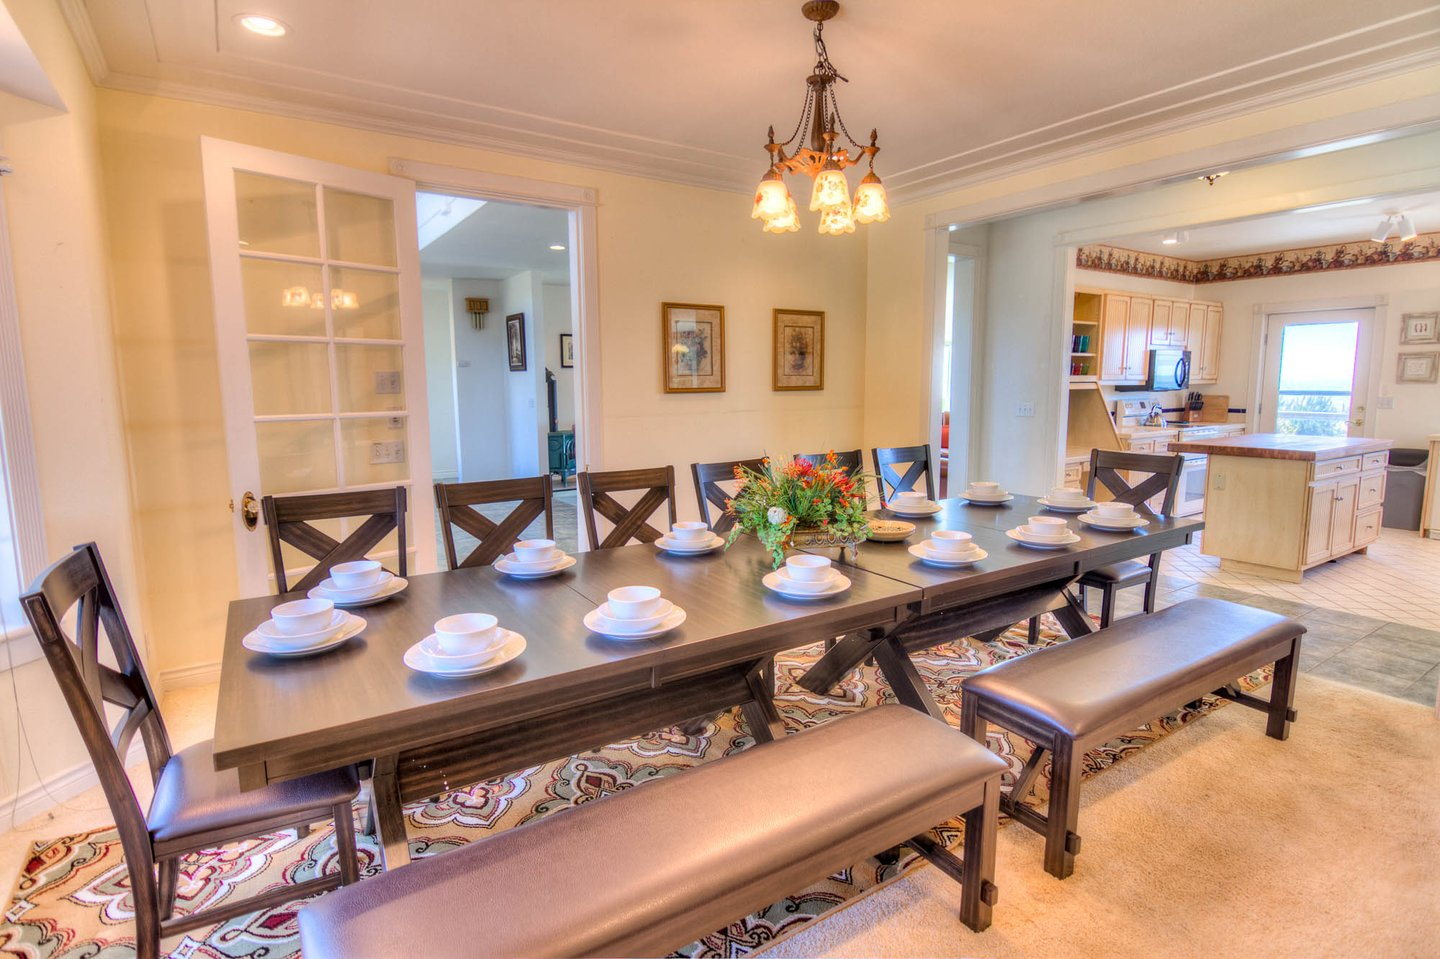 Large dining table perfect for those group meals.